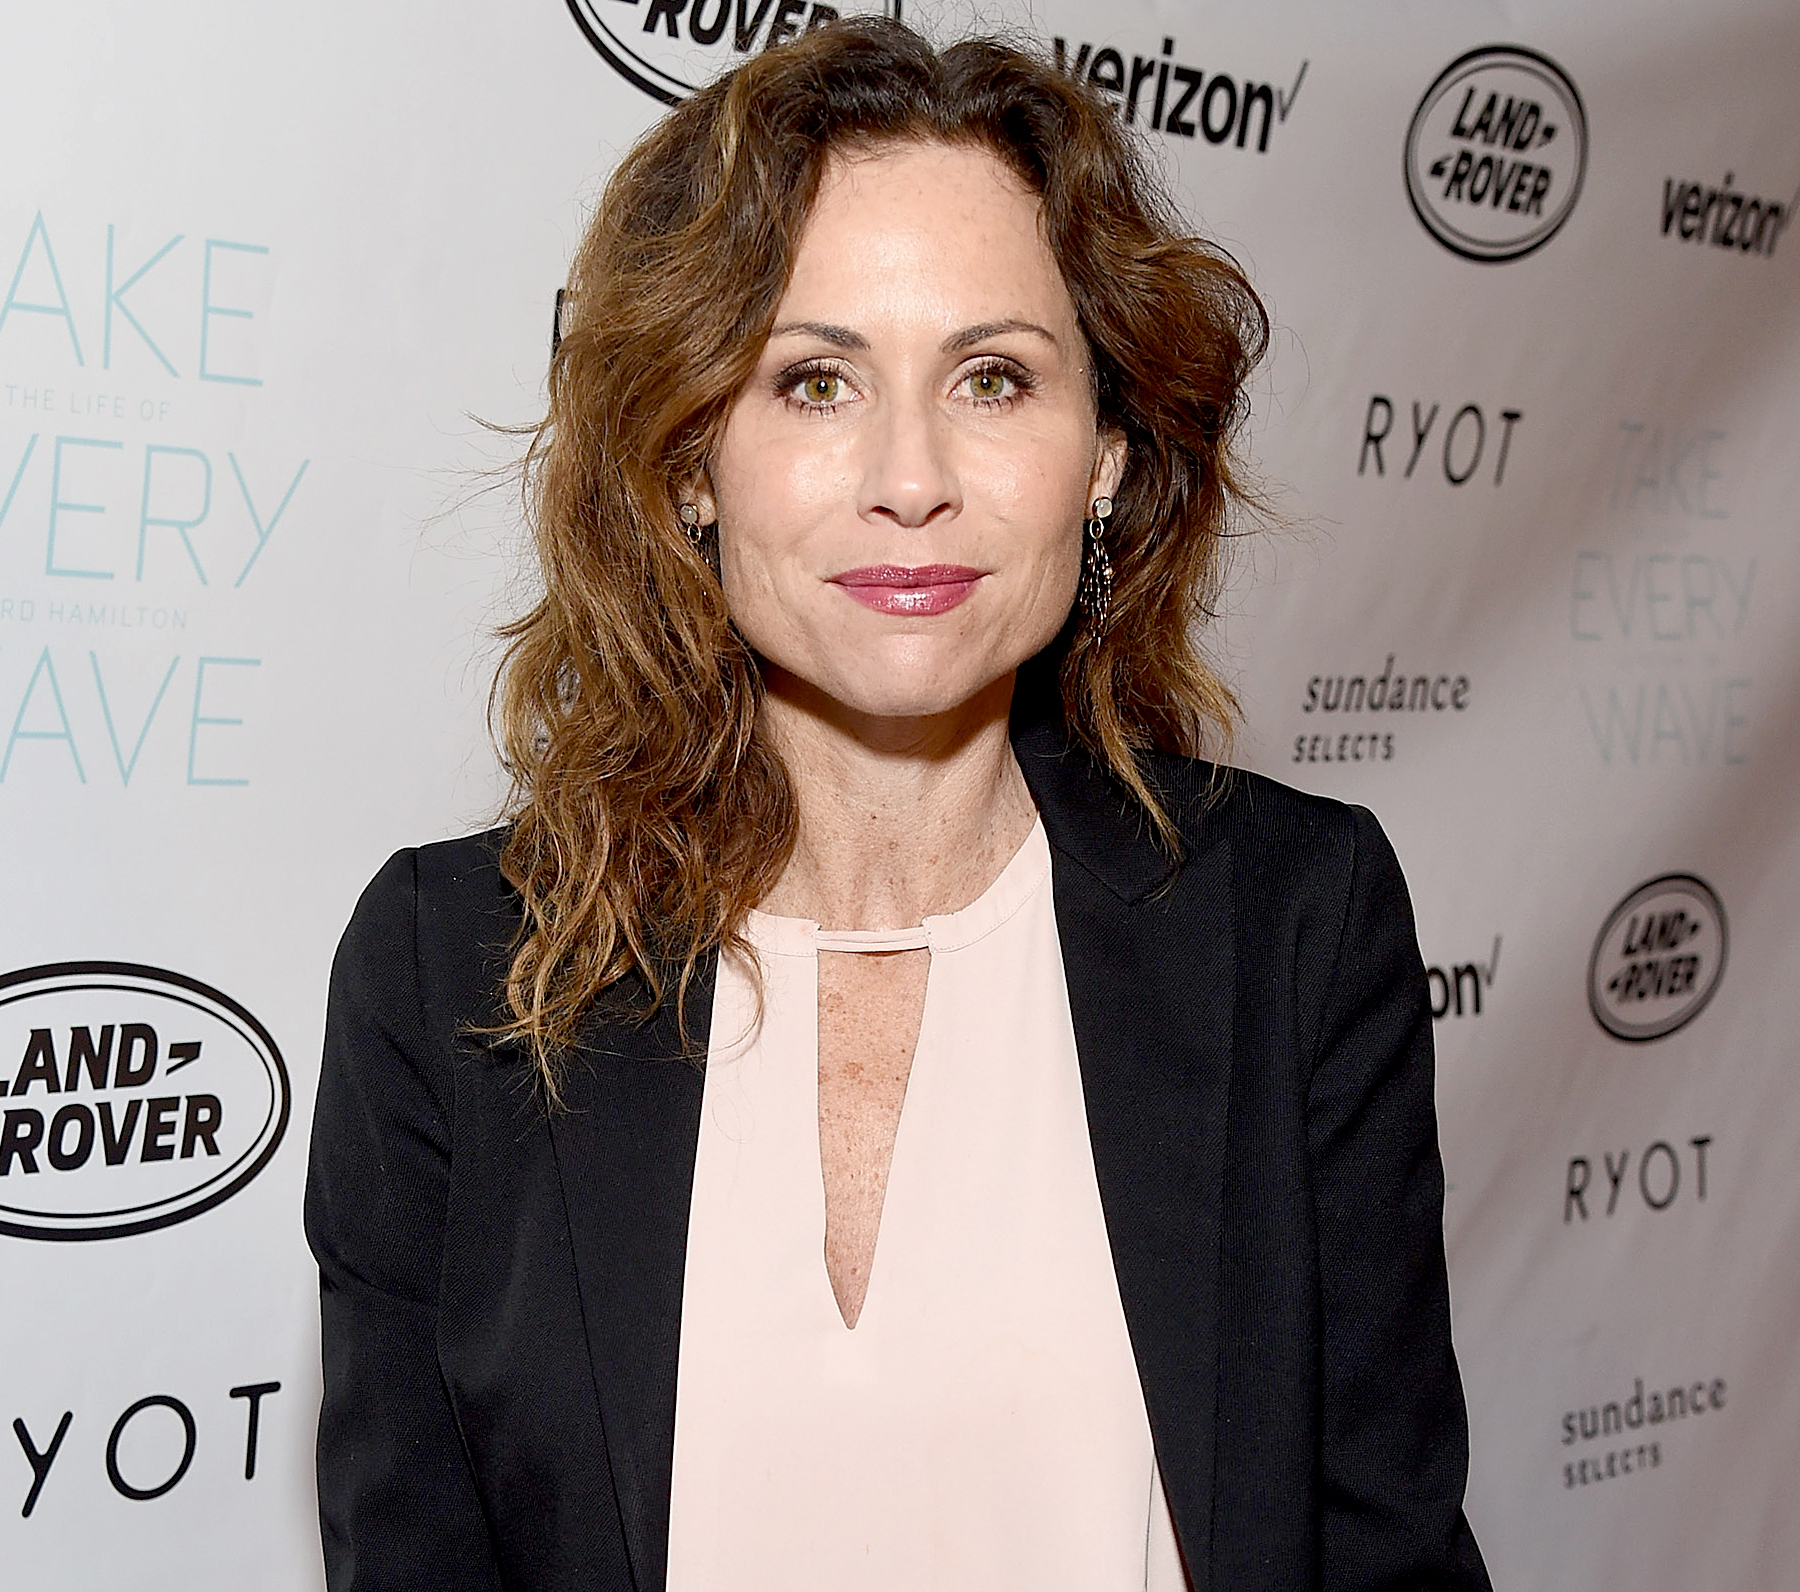 Snapchat Minnie Driver naked (87 photos), Ass, Fappening, Boobs, in bikini 2019